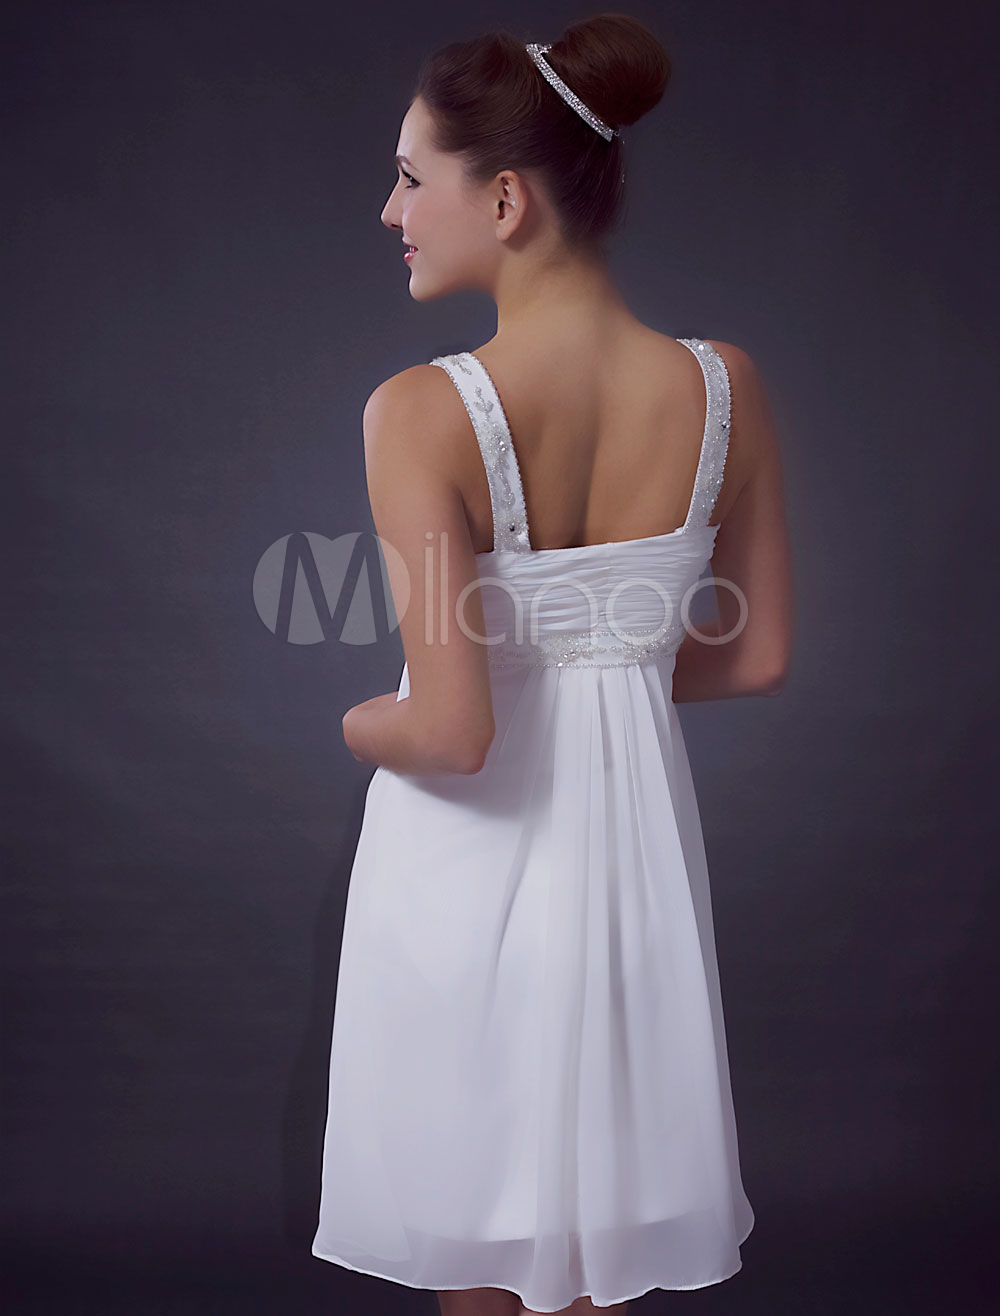 China Wholesale Clothes - White Sweetheart Lace Chiffon Satin Summer Homecoming Cocktail Dress